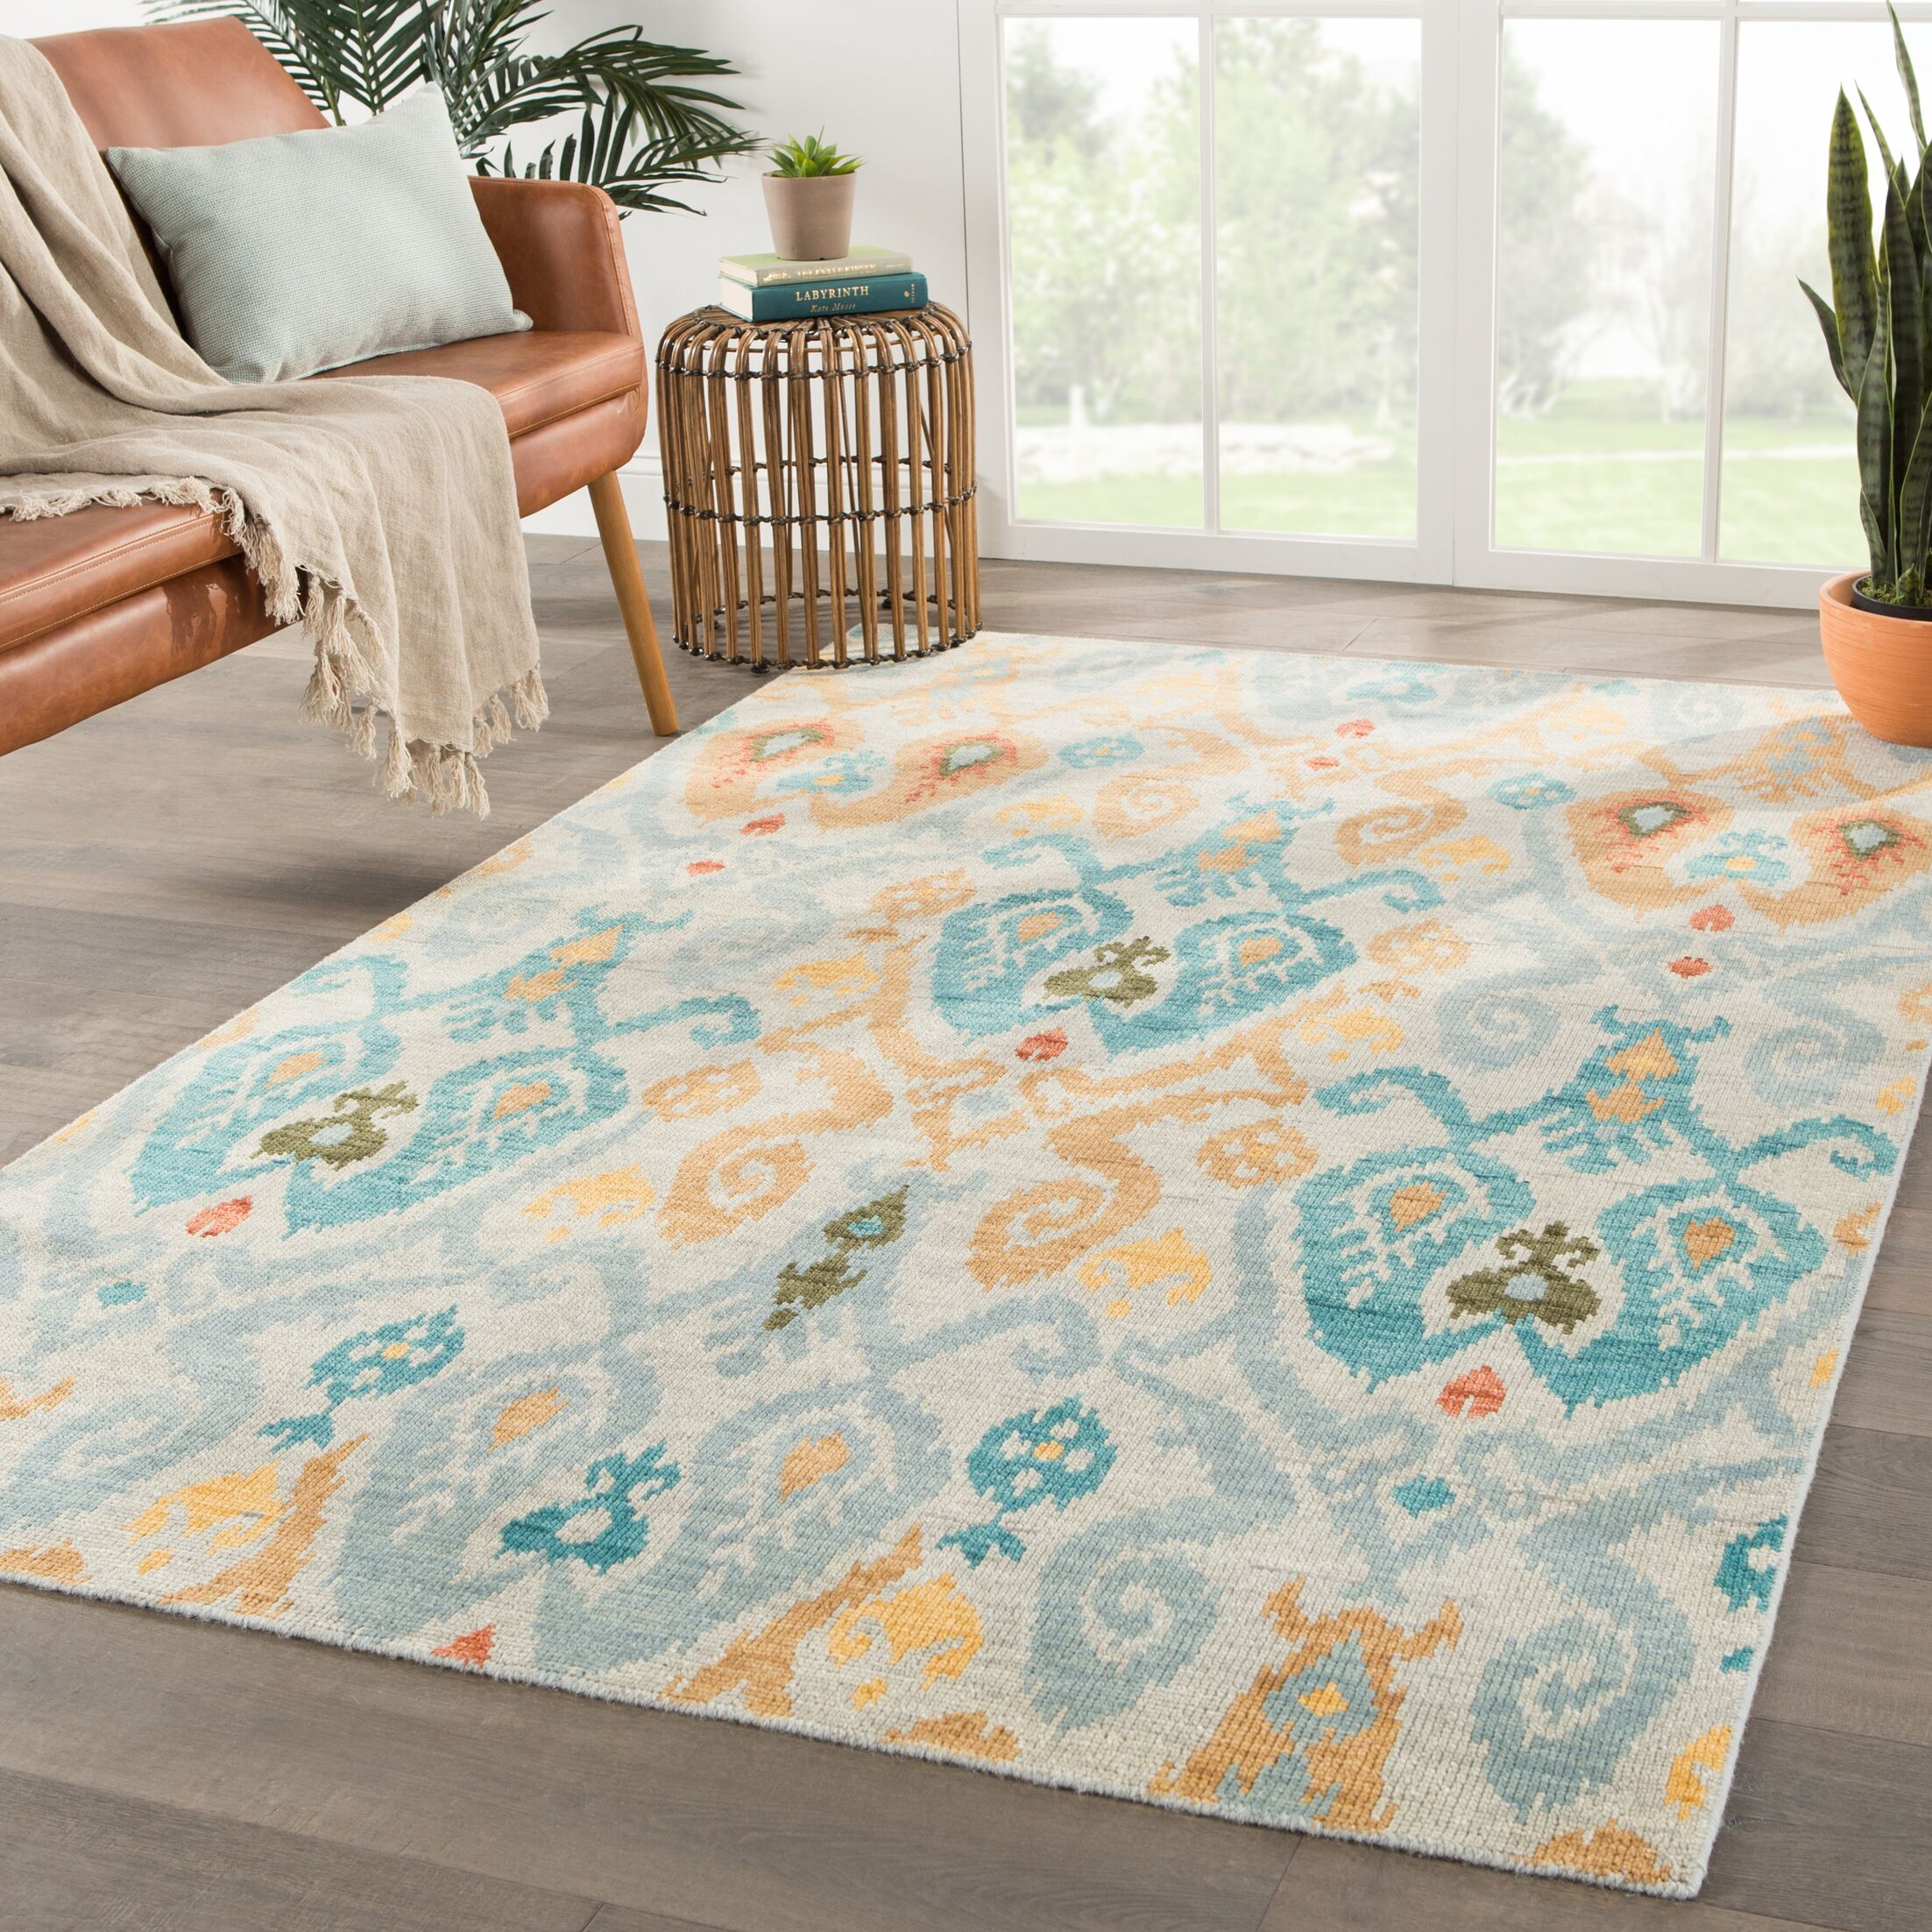 Norwalk Ikat Hand-Knotted Wool Blue/Yellow Area Rug Rug Size: Rectangle 5'6